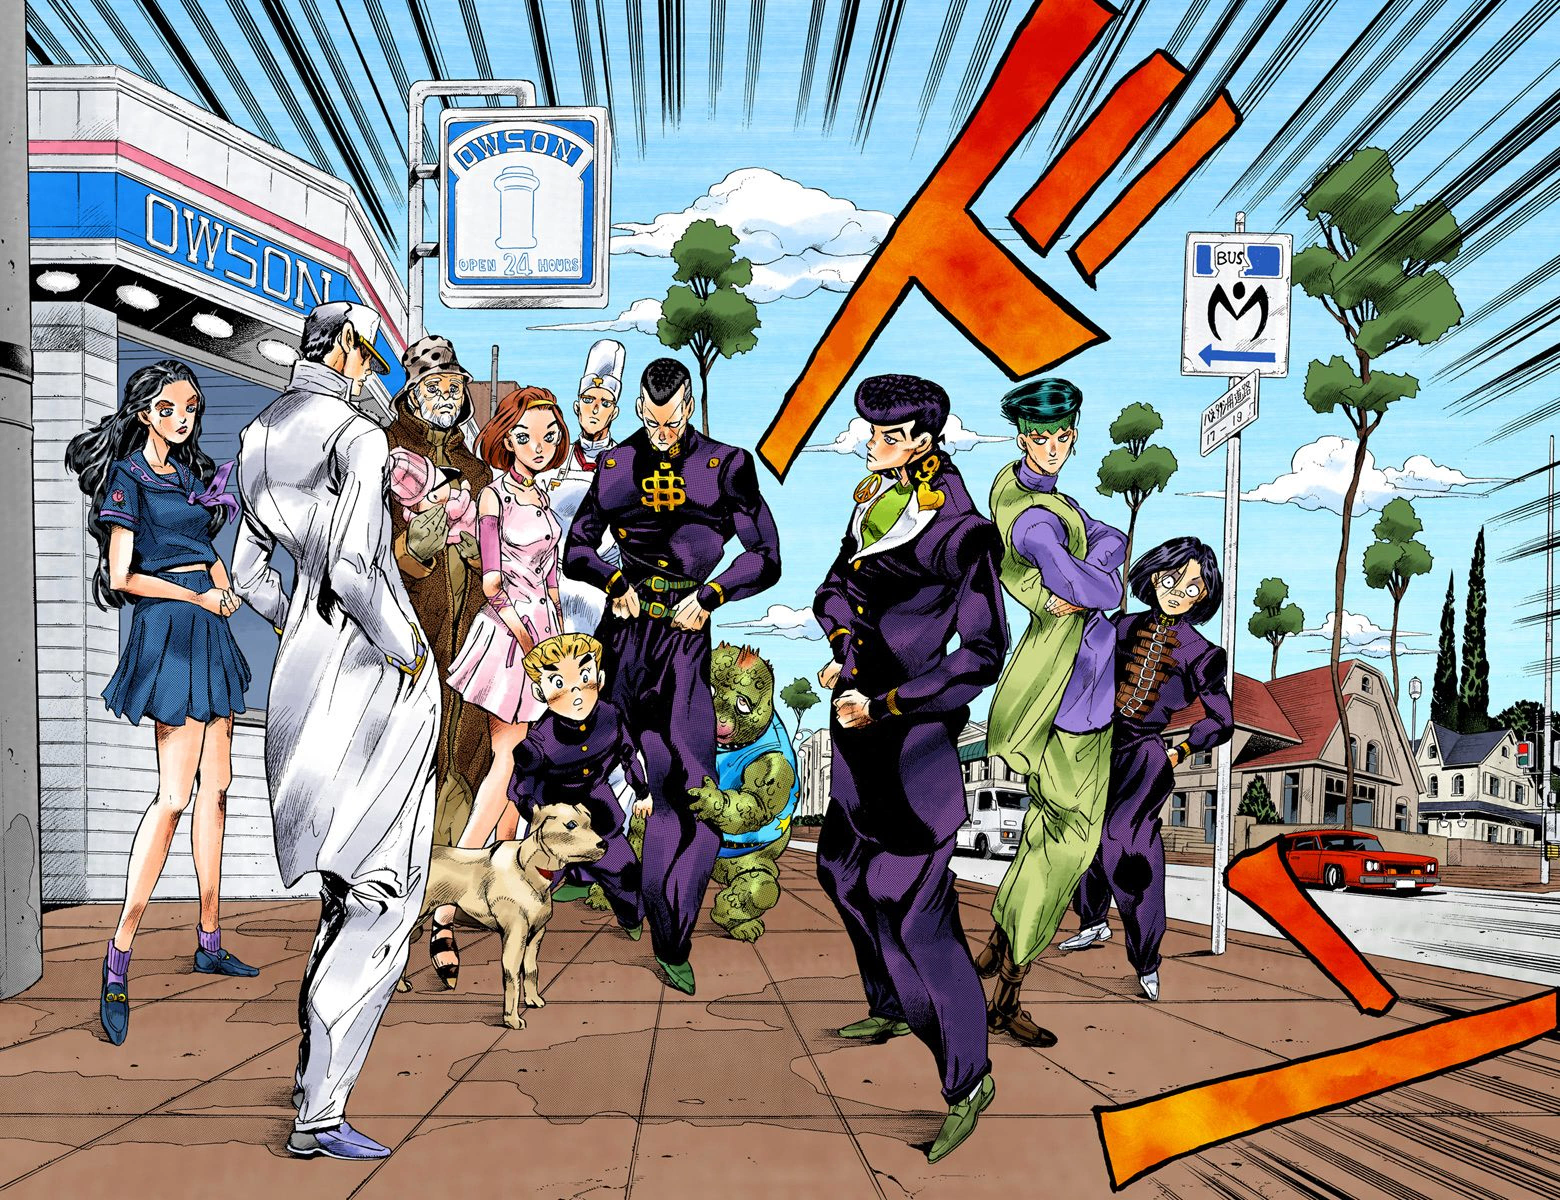 Join us in this Bizarre Adventure!